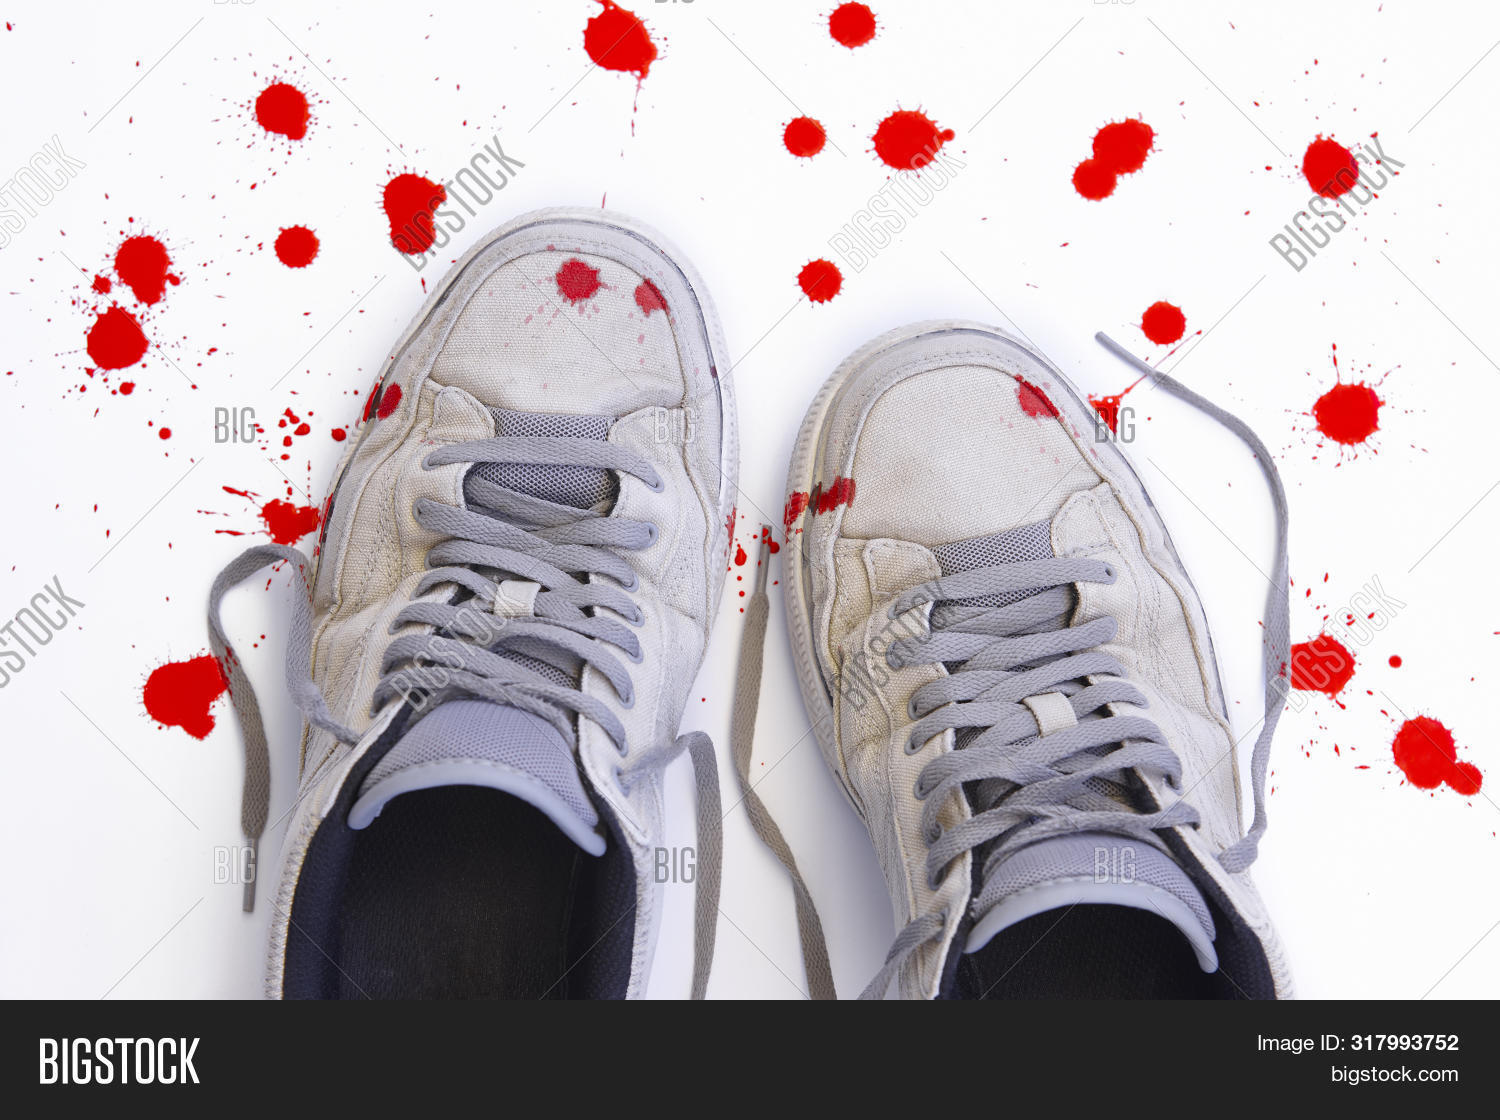 Used Sneakers With Blood Isolated On White. Violence Against Children